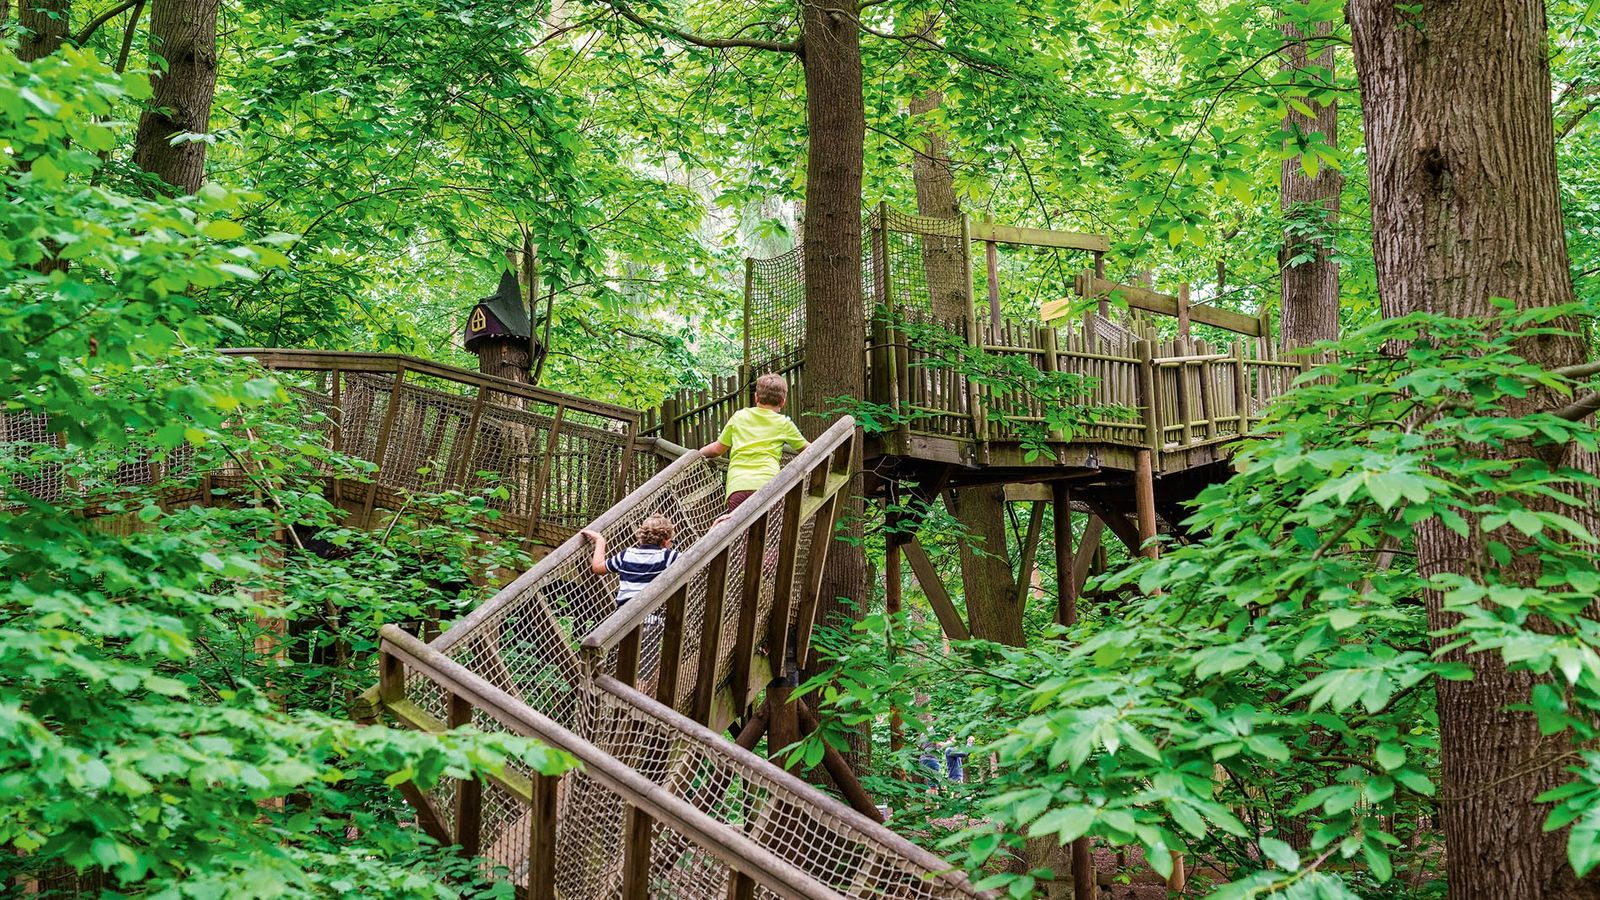 The BeWILDerwood forest attraction offers a wealth of adventurous activities for families of all ages.